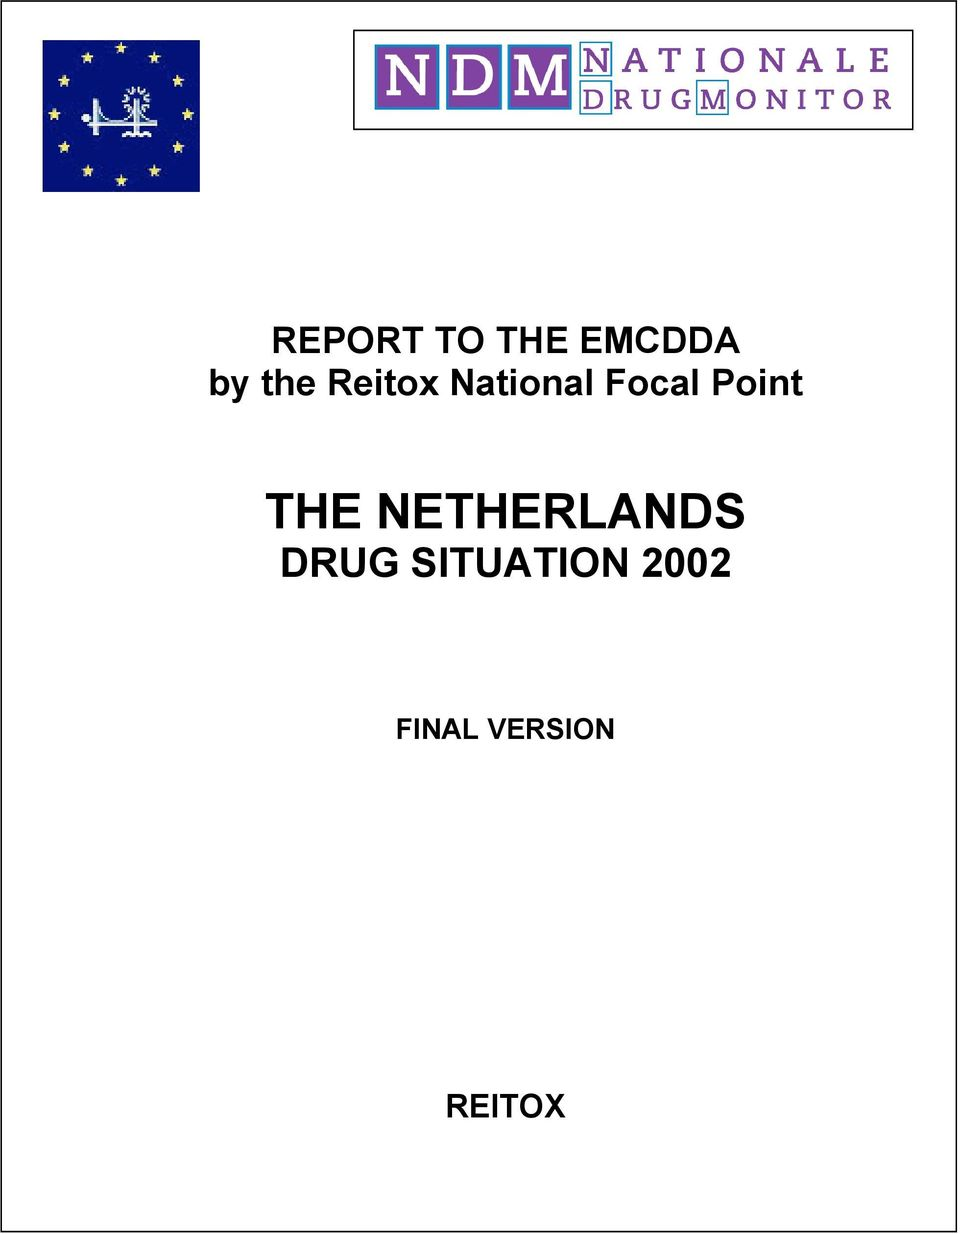 THE NETHERLANDS DRUG